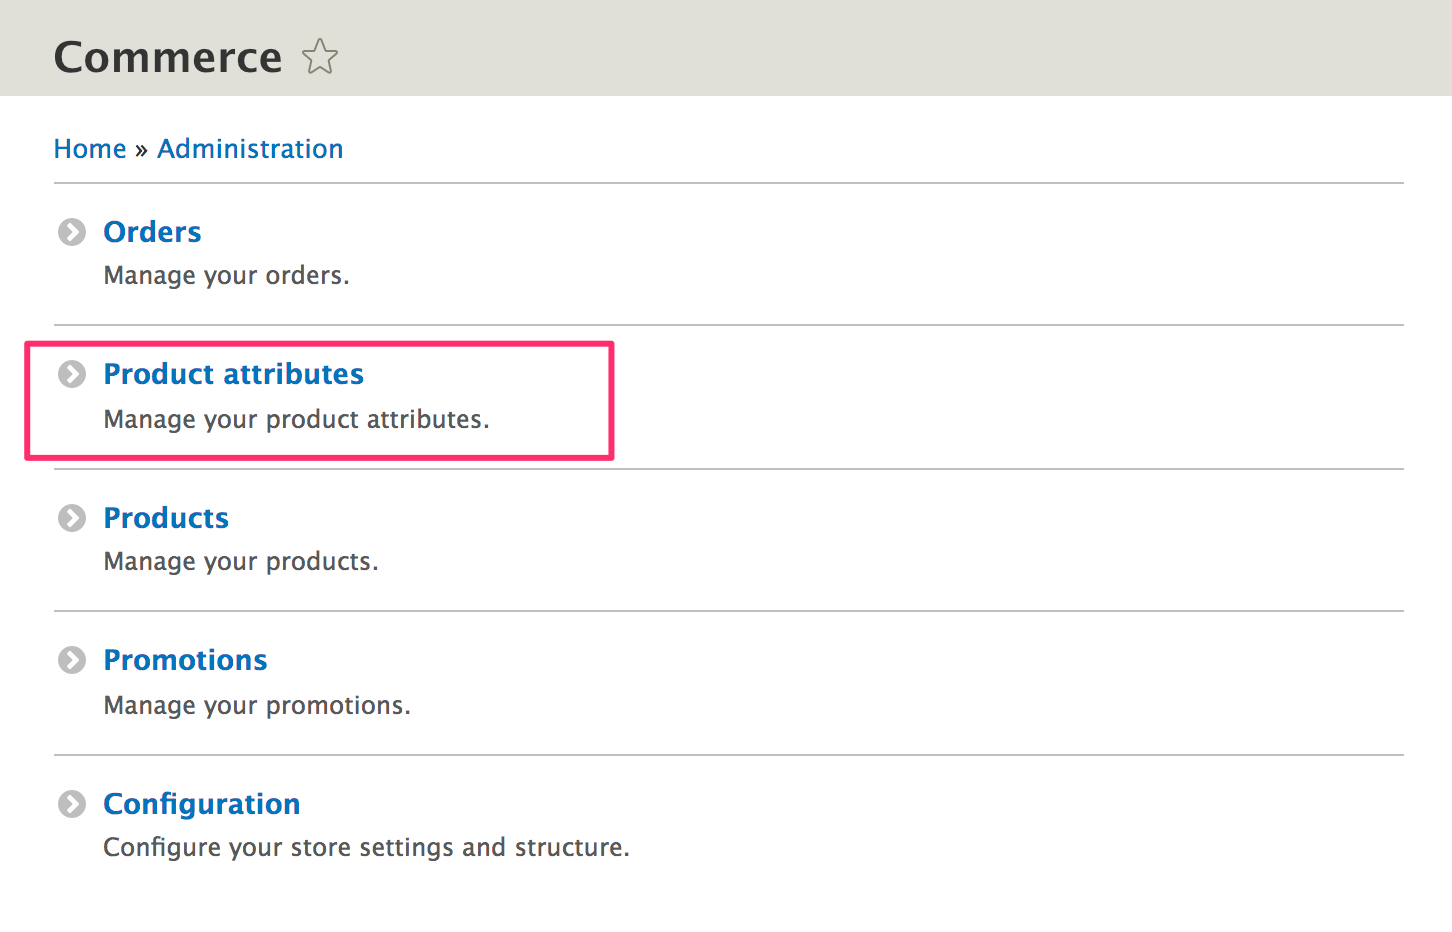 Product attributes from administration page